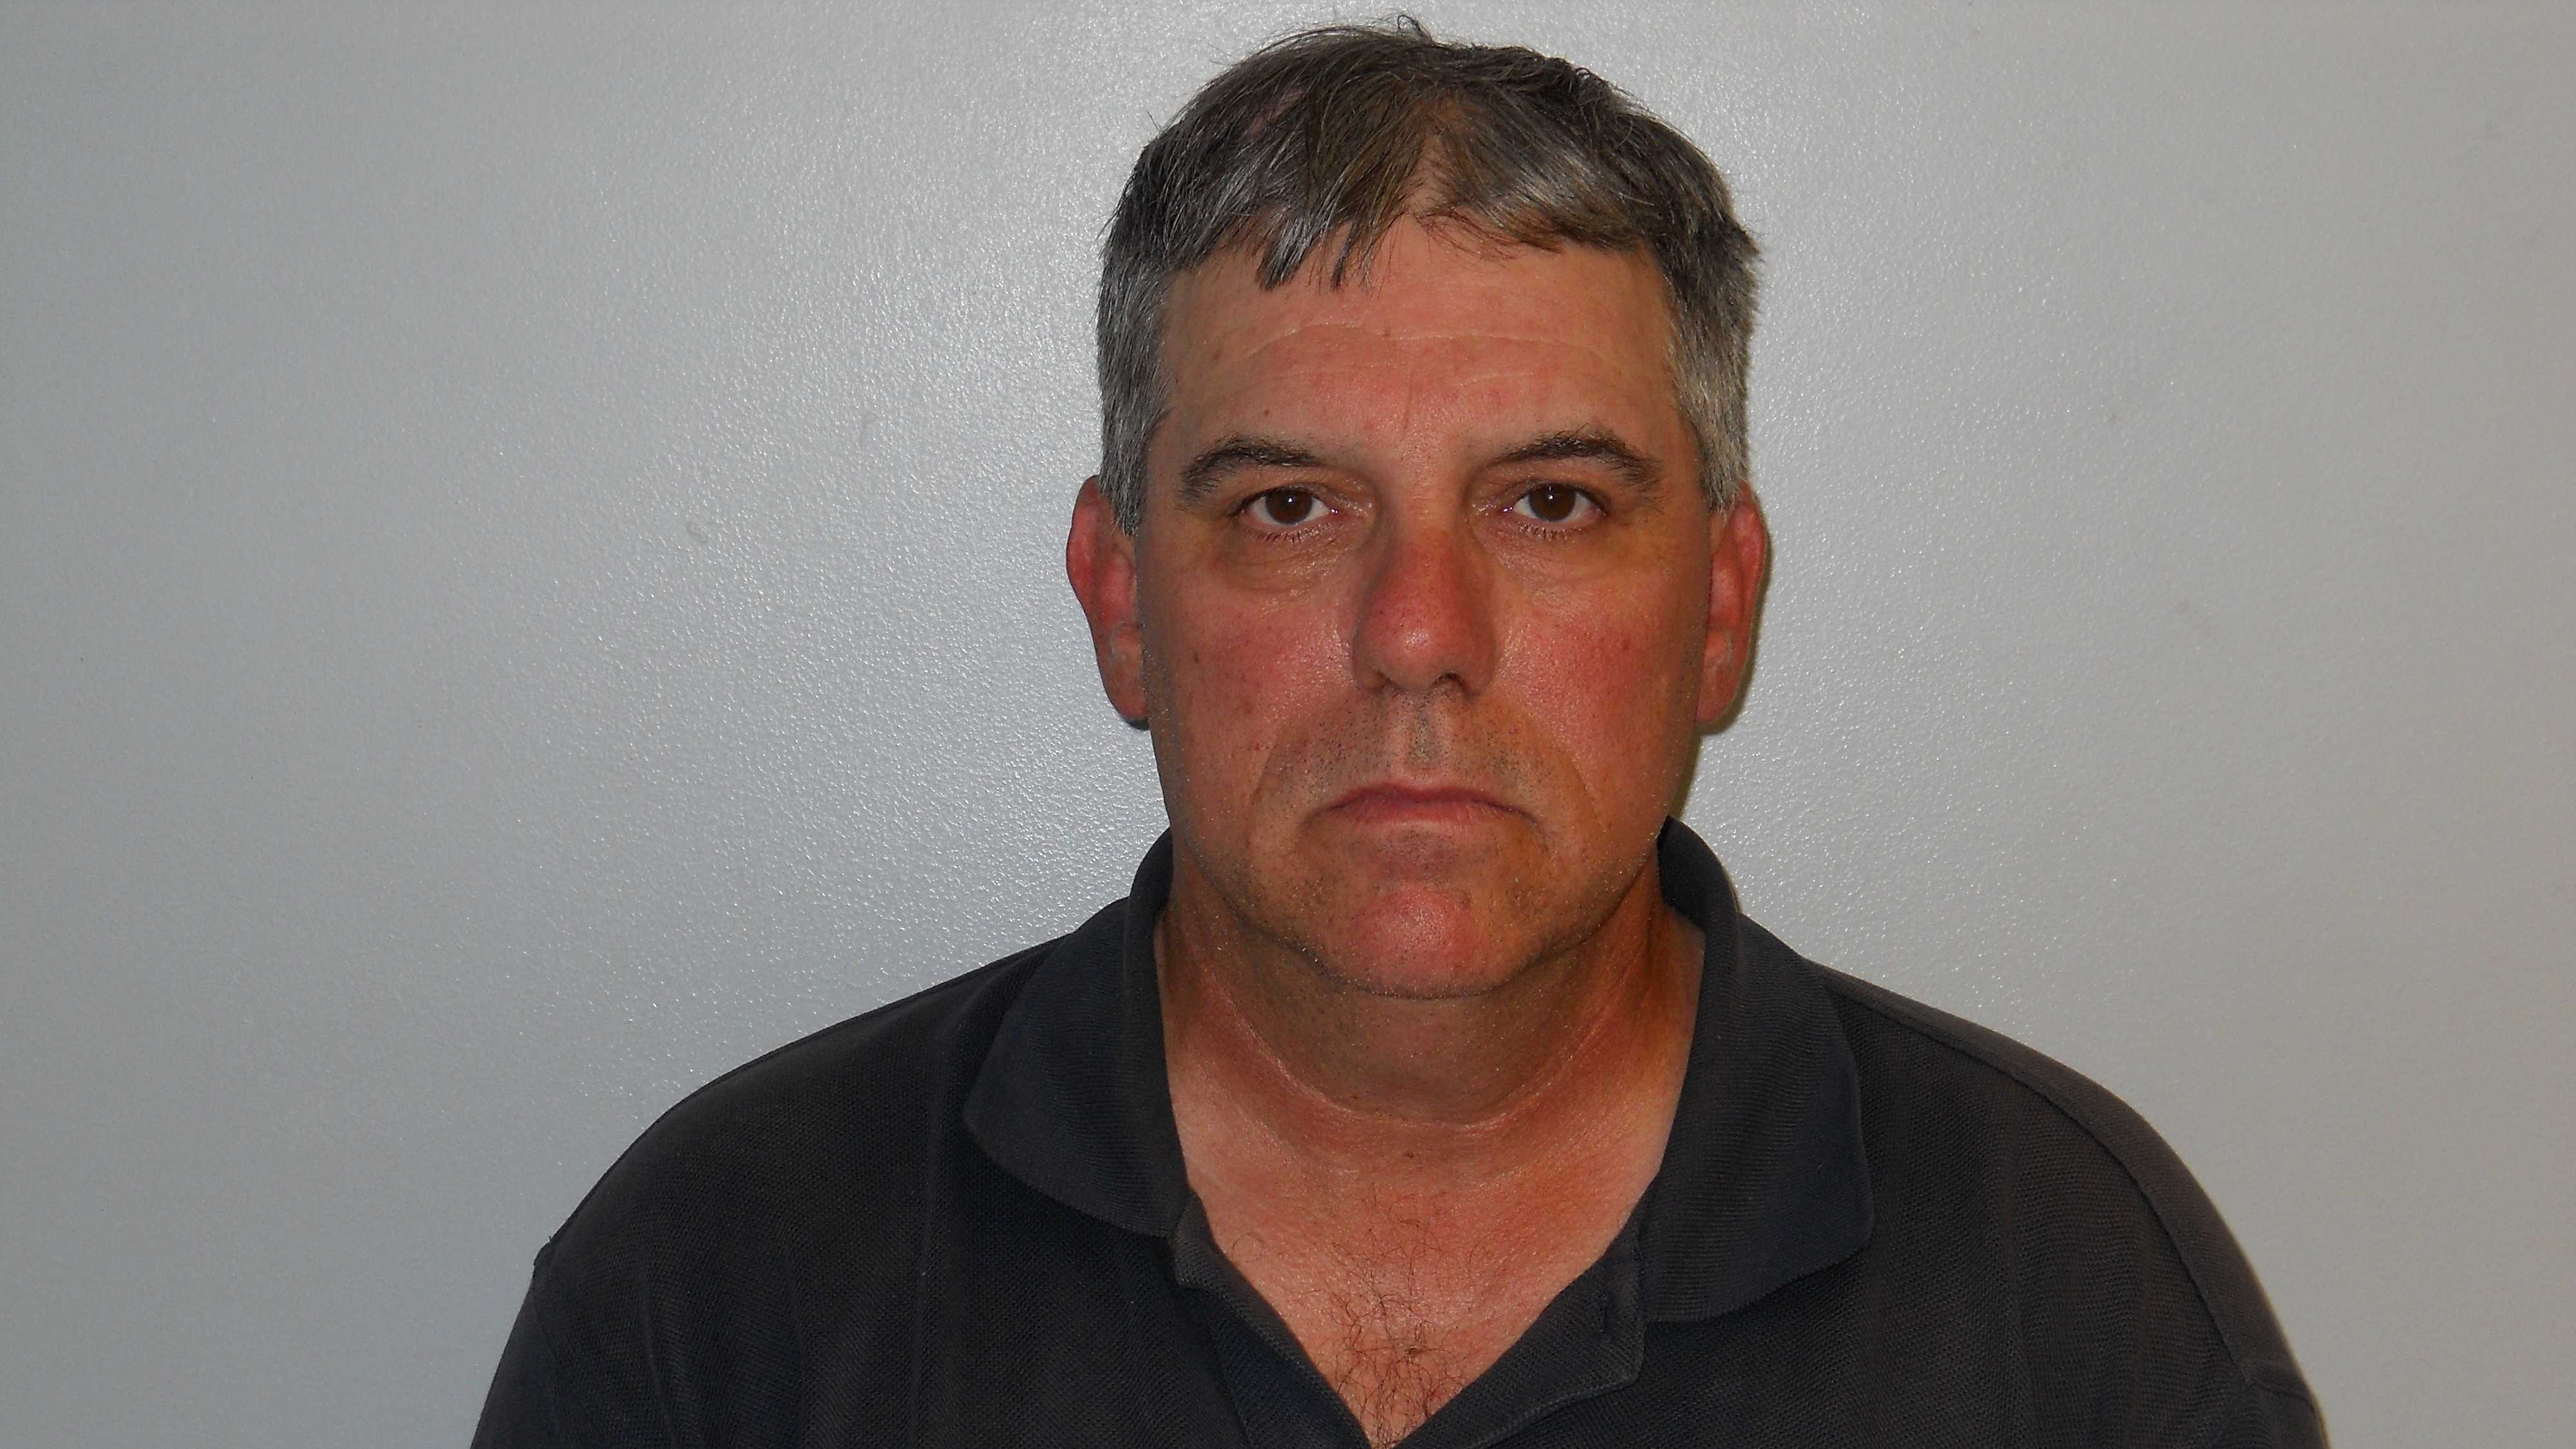 Robert A. Joubert was charged by Concord, N.H. police with Aggravated Felonious Sexual Assault and Sexual Assault